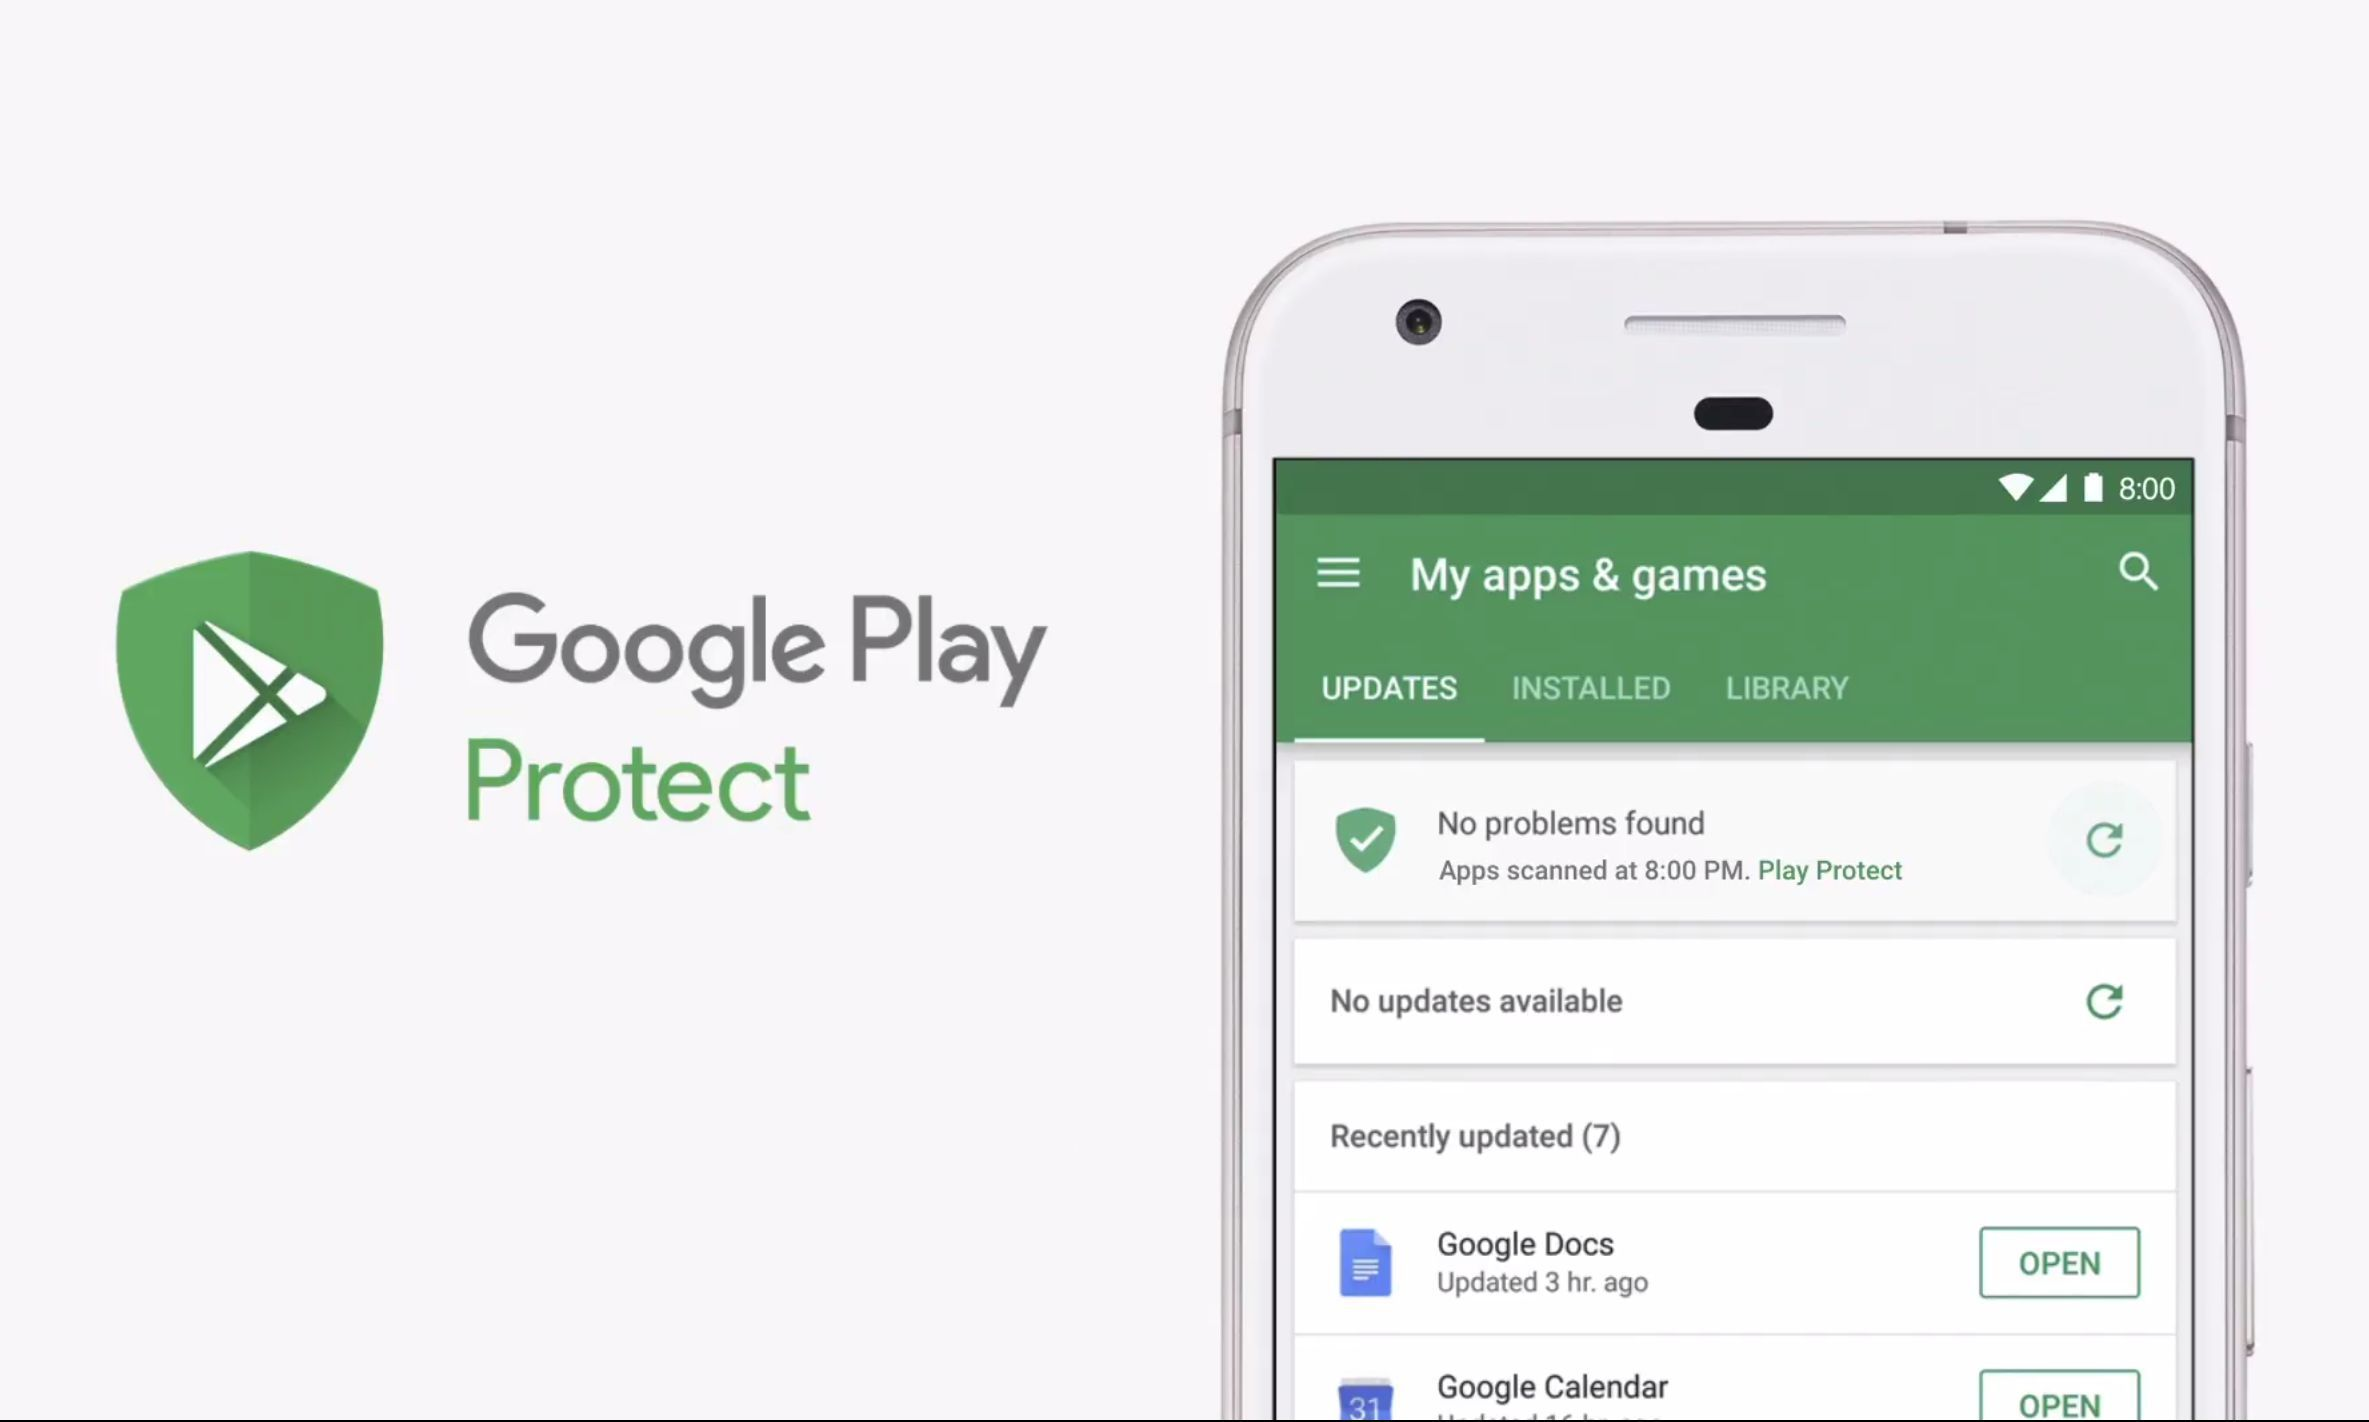 how to connect a device to google play